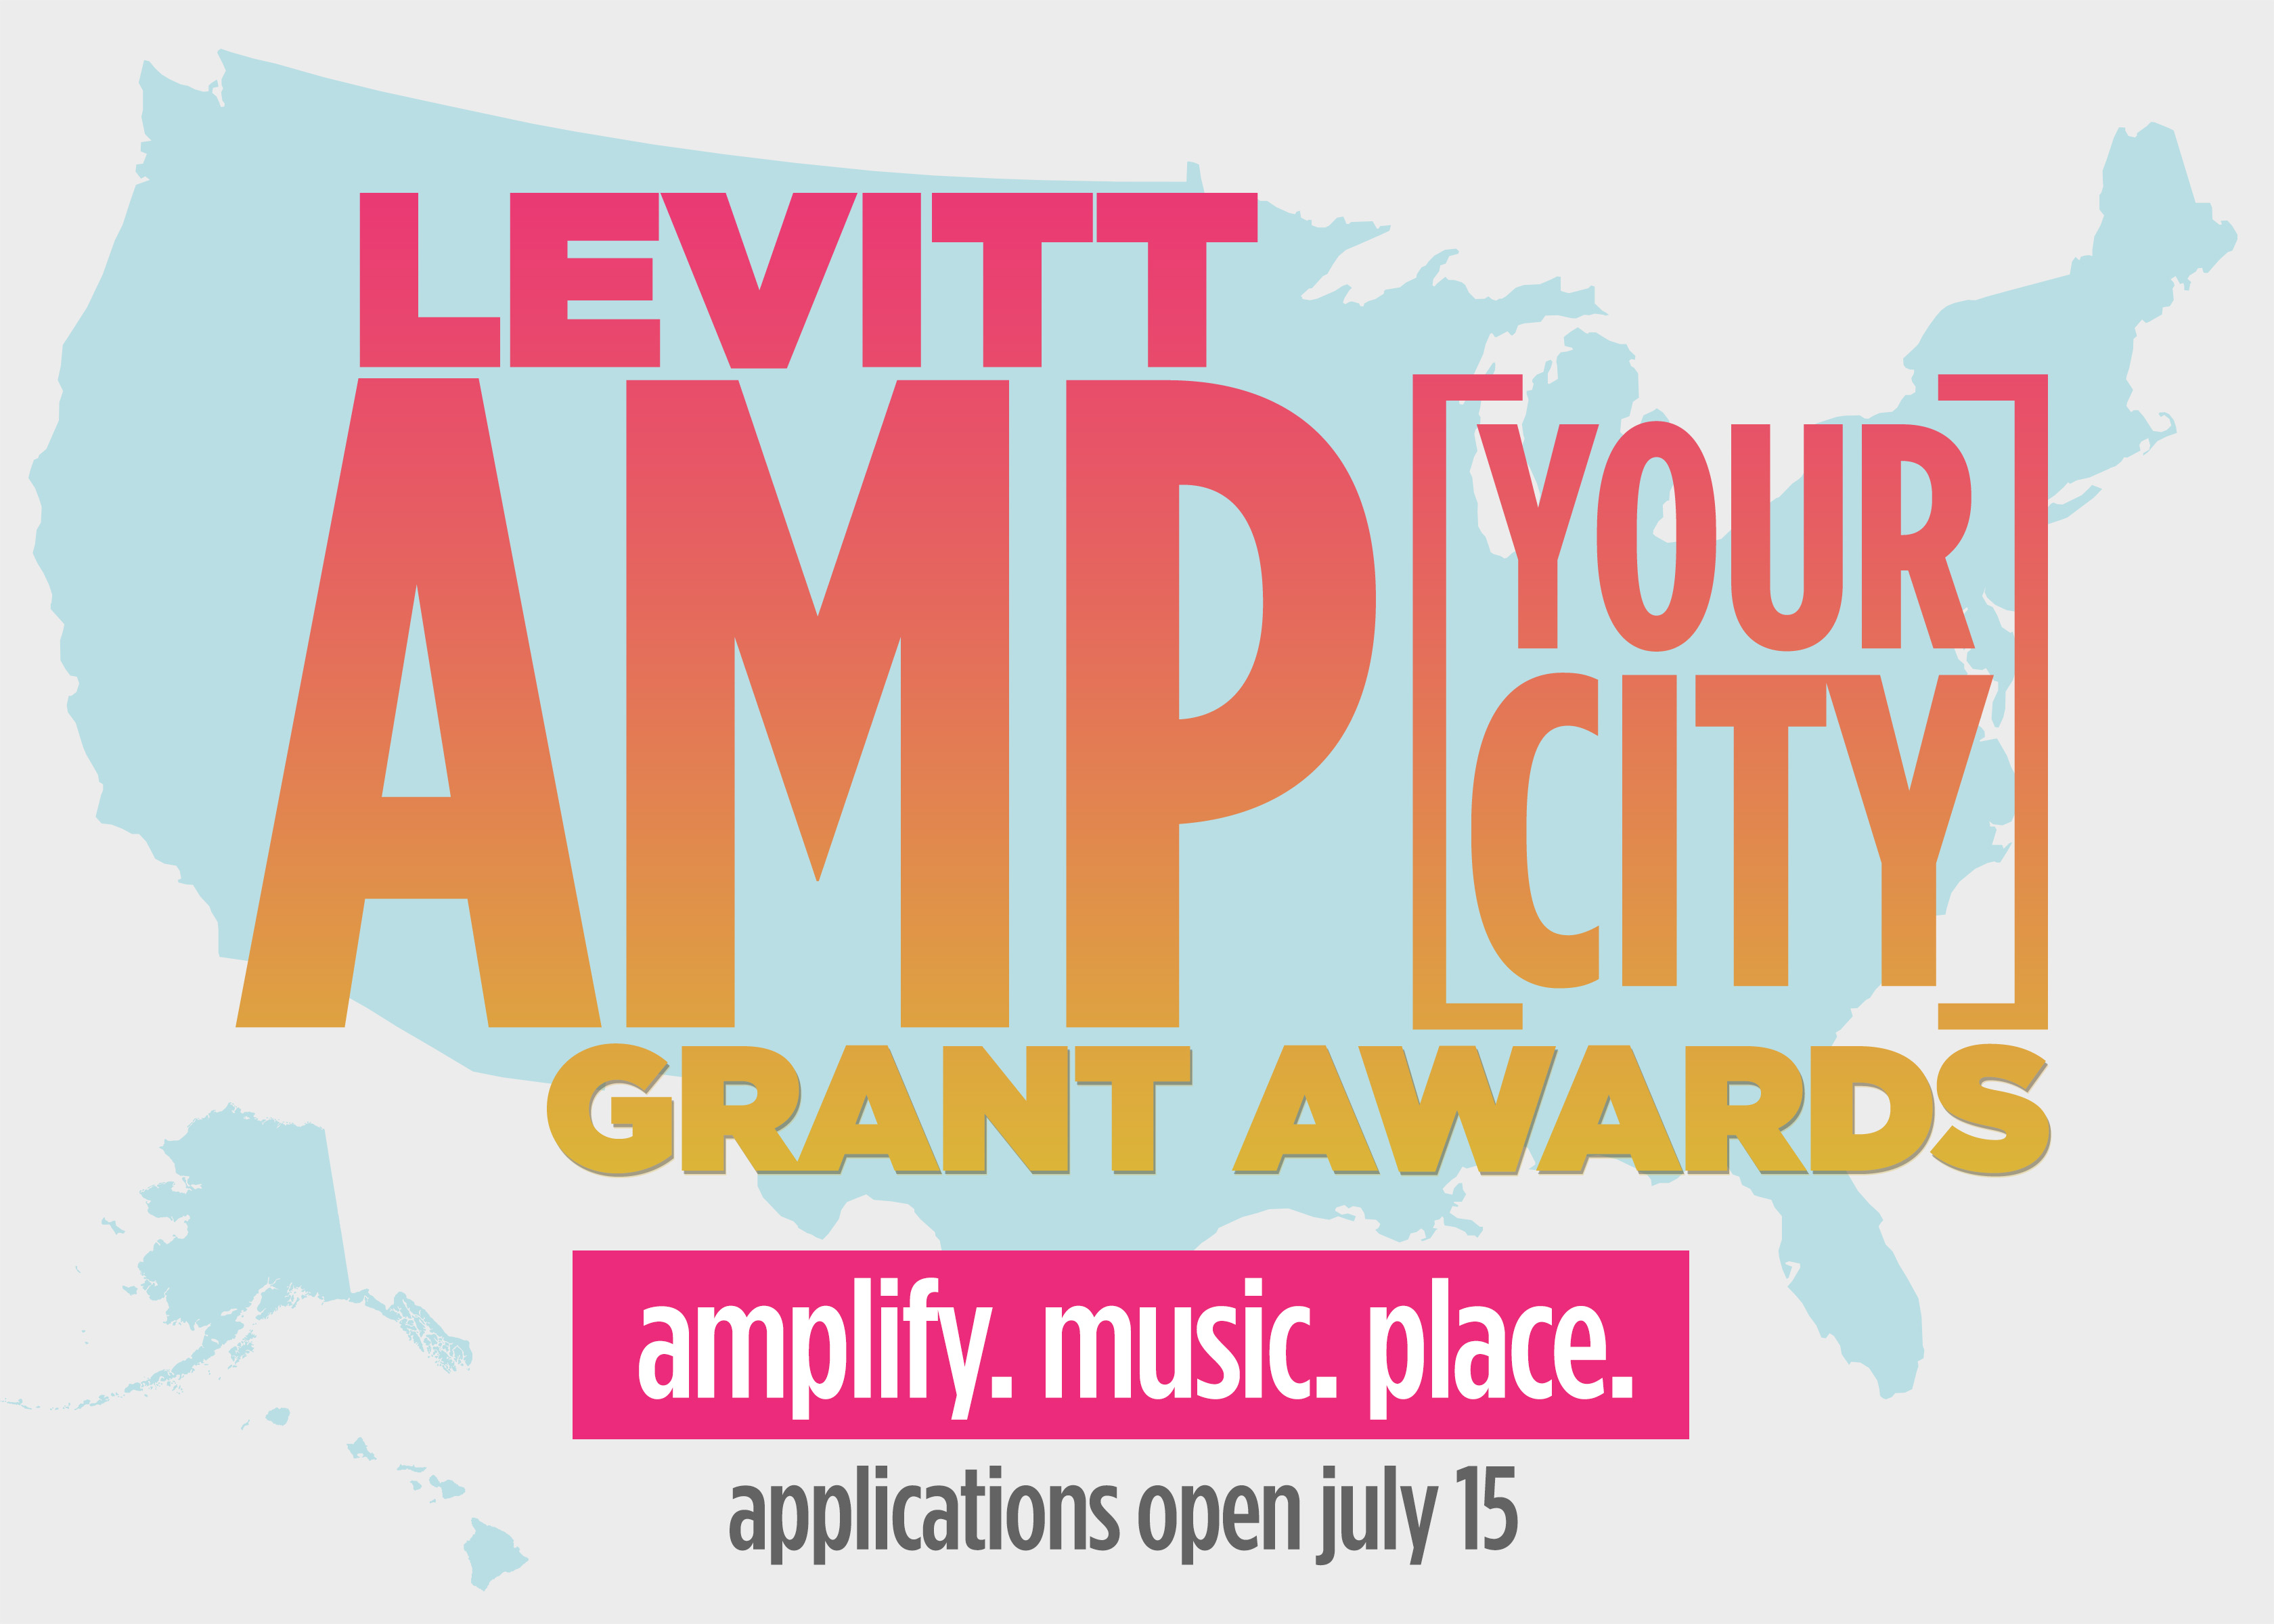 Levitt AMP Your City Grant Awards